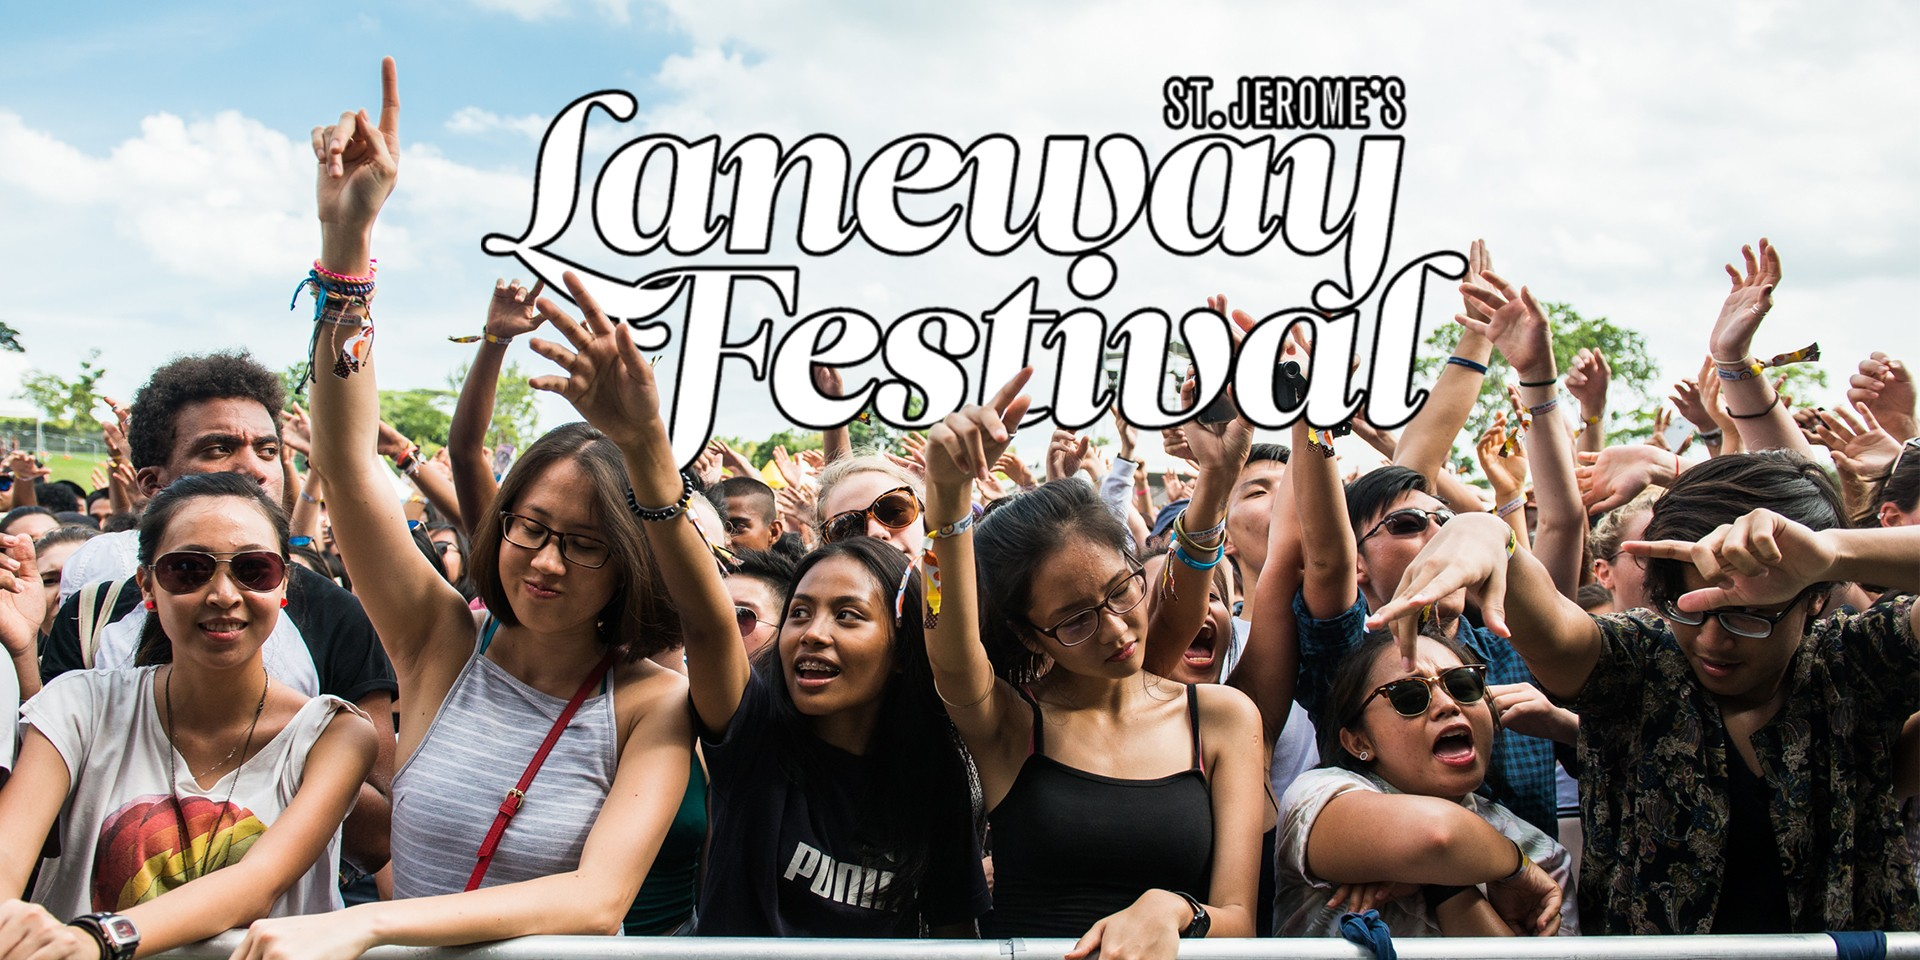 The highs and lows of Laneway Festival Singapore 2016